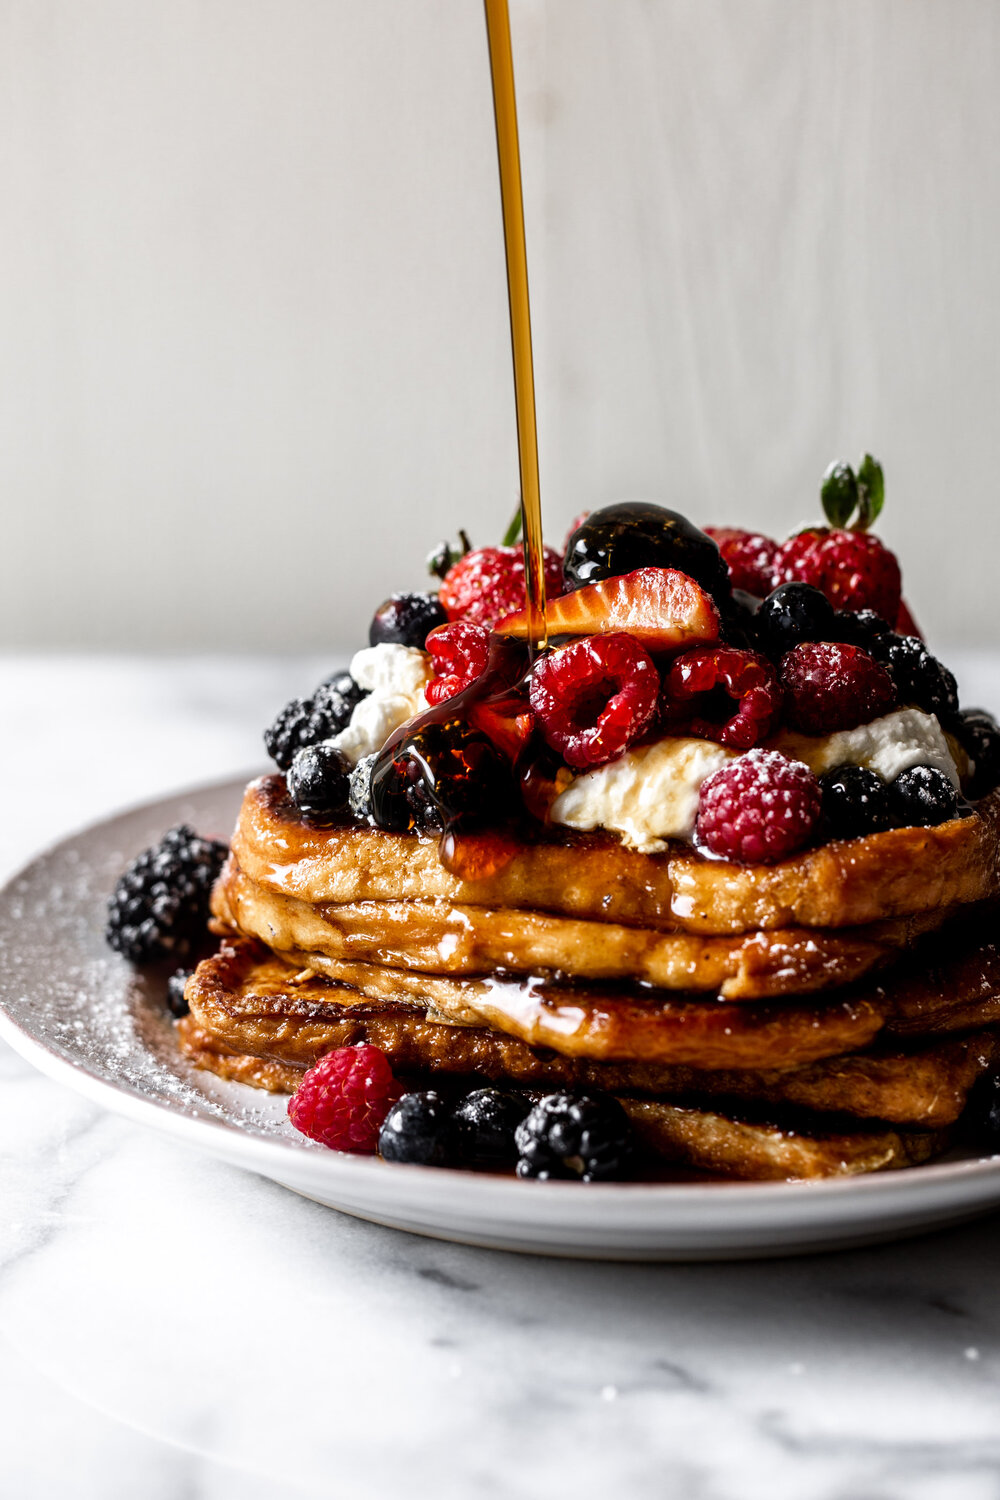 ALDI easter brunch french toast with whipped cream and berries-31.jpg